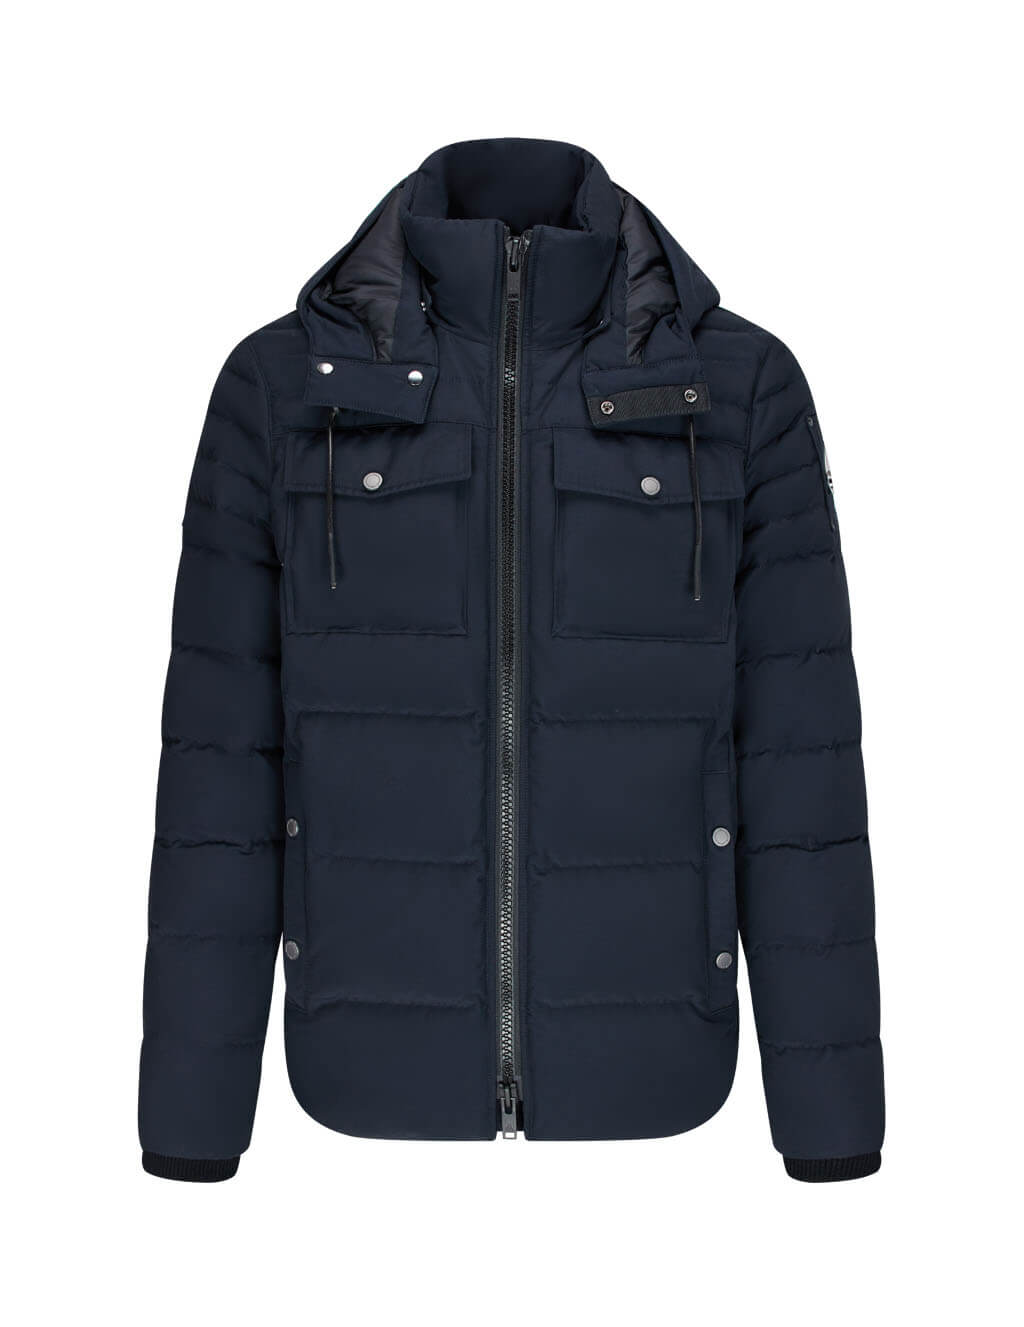 Men's Moose Knuckles Lambton Jacket in Navy - M30MJ176N 833